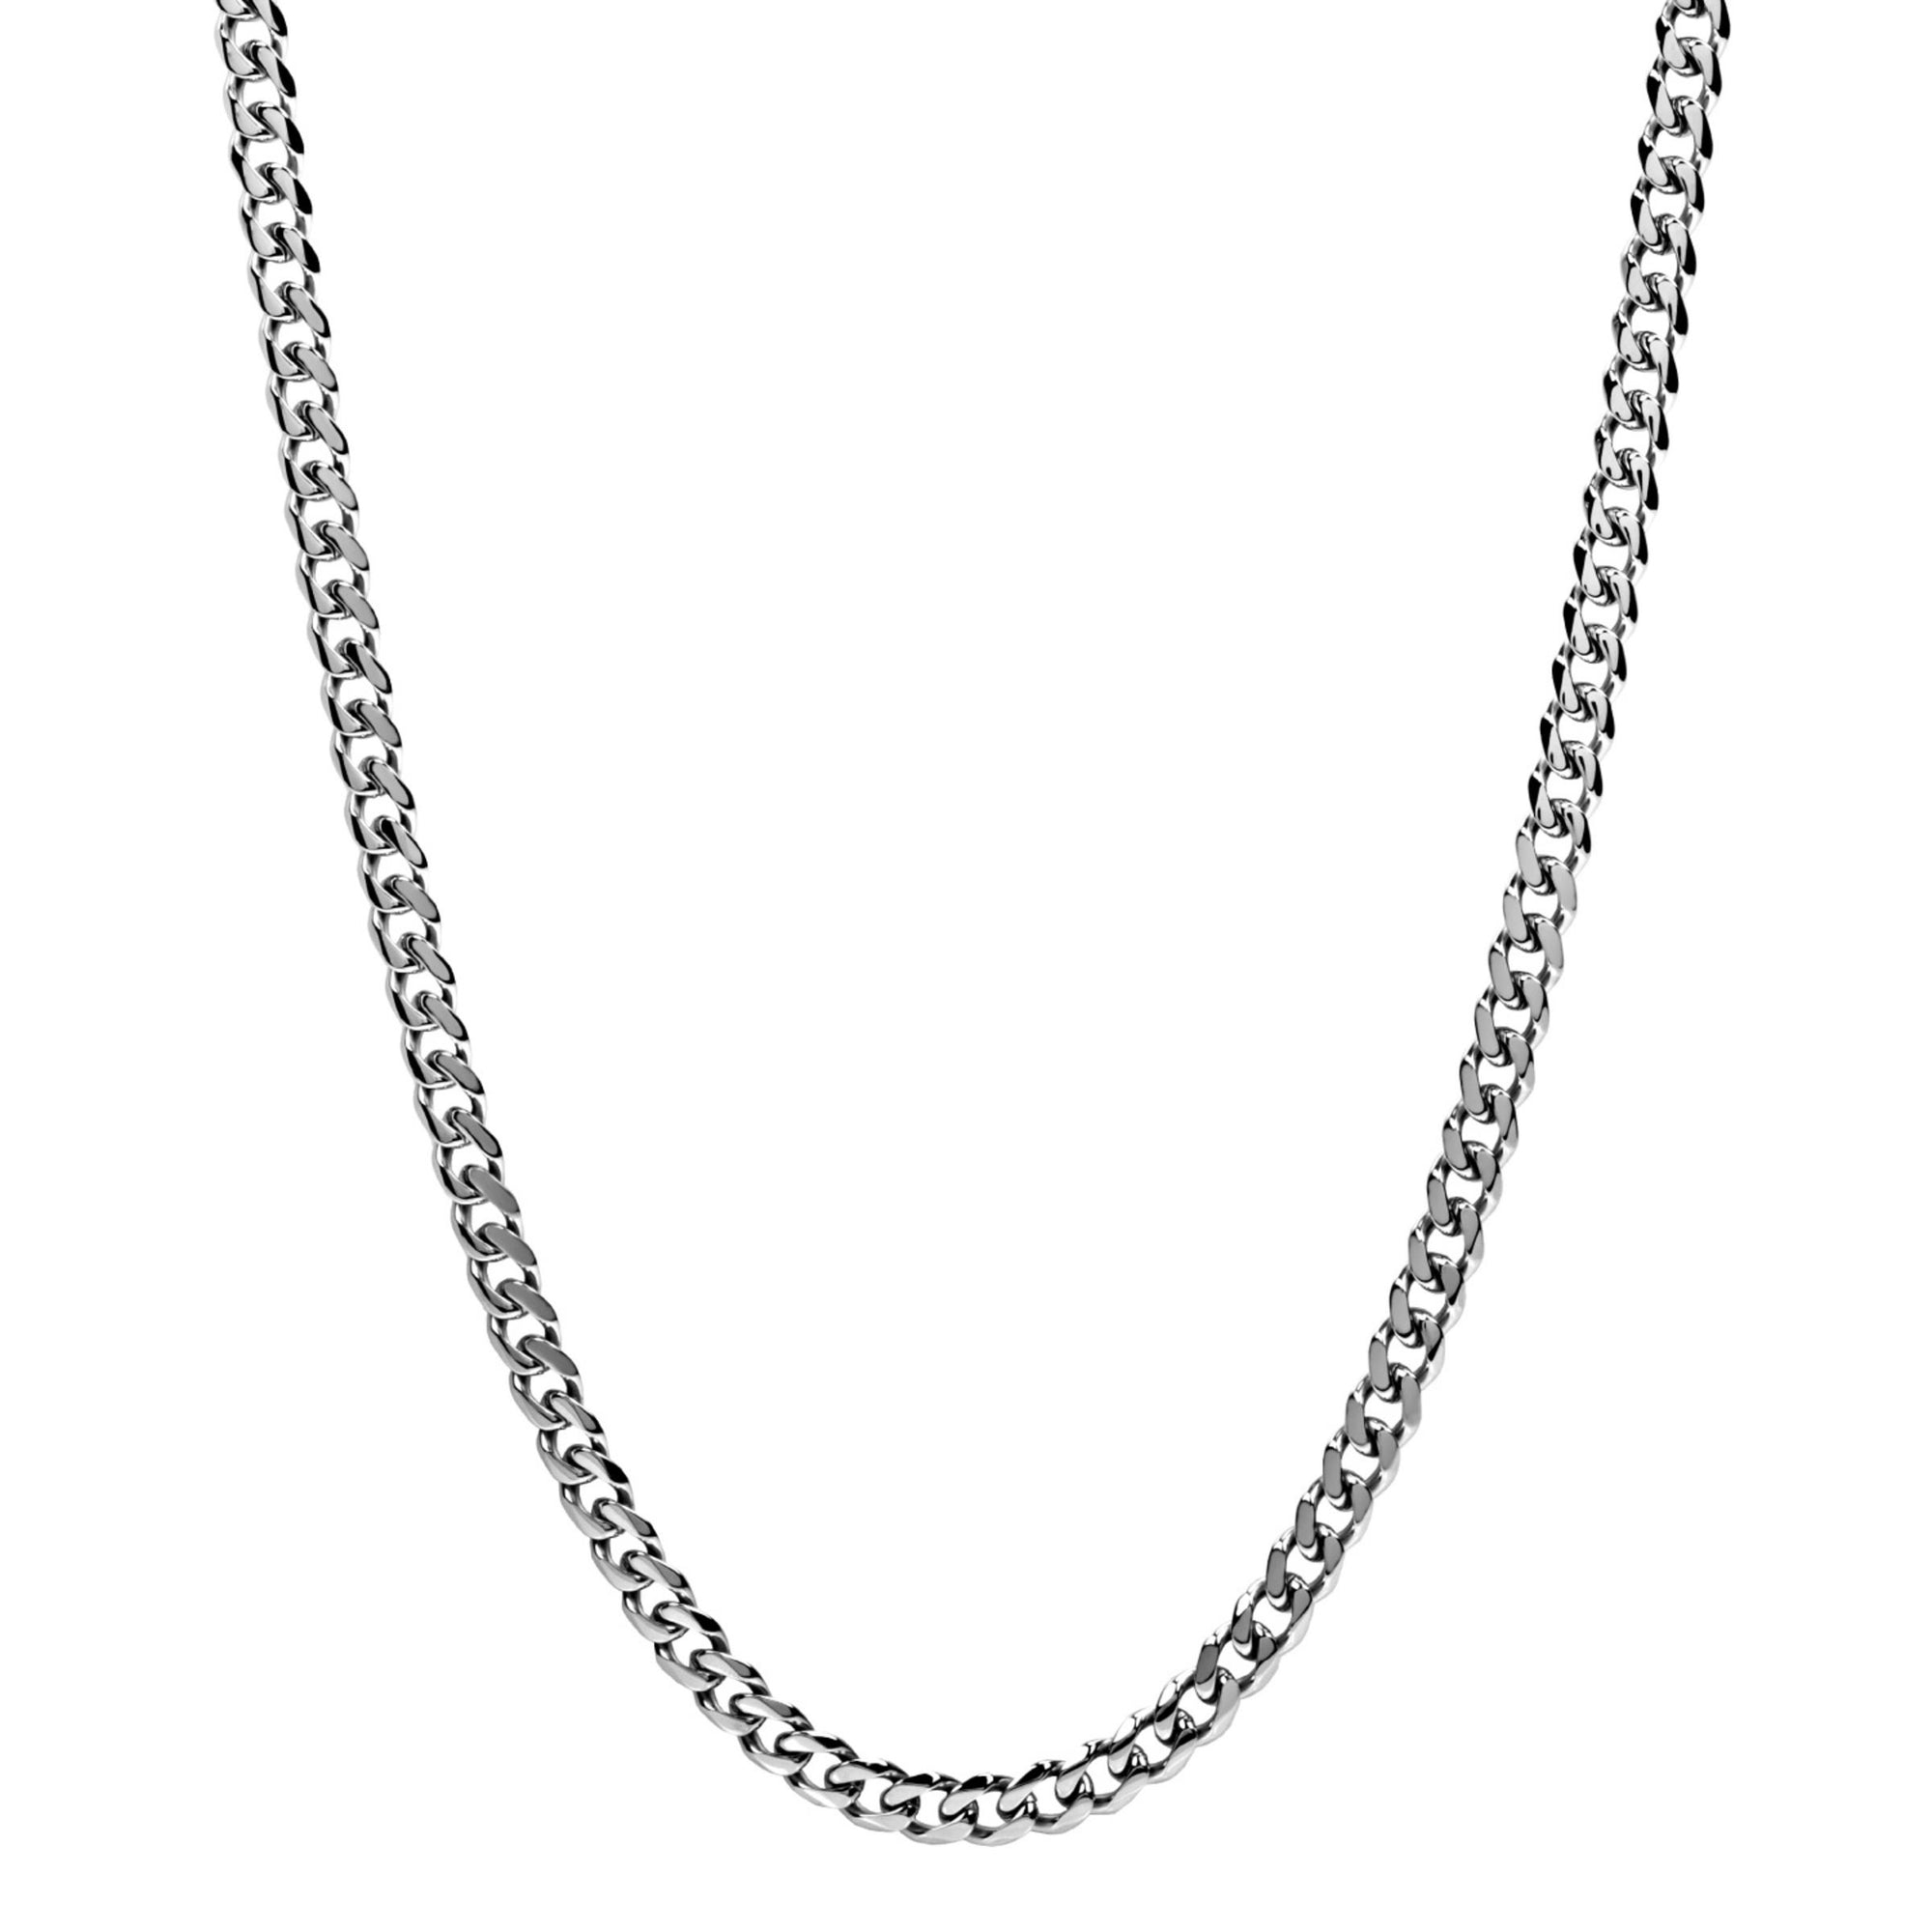 Men's 8mm Men's Steel Cuban Link Chain Necklace at Arman's Jewellers Kitchener